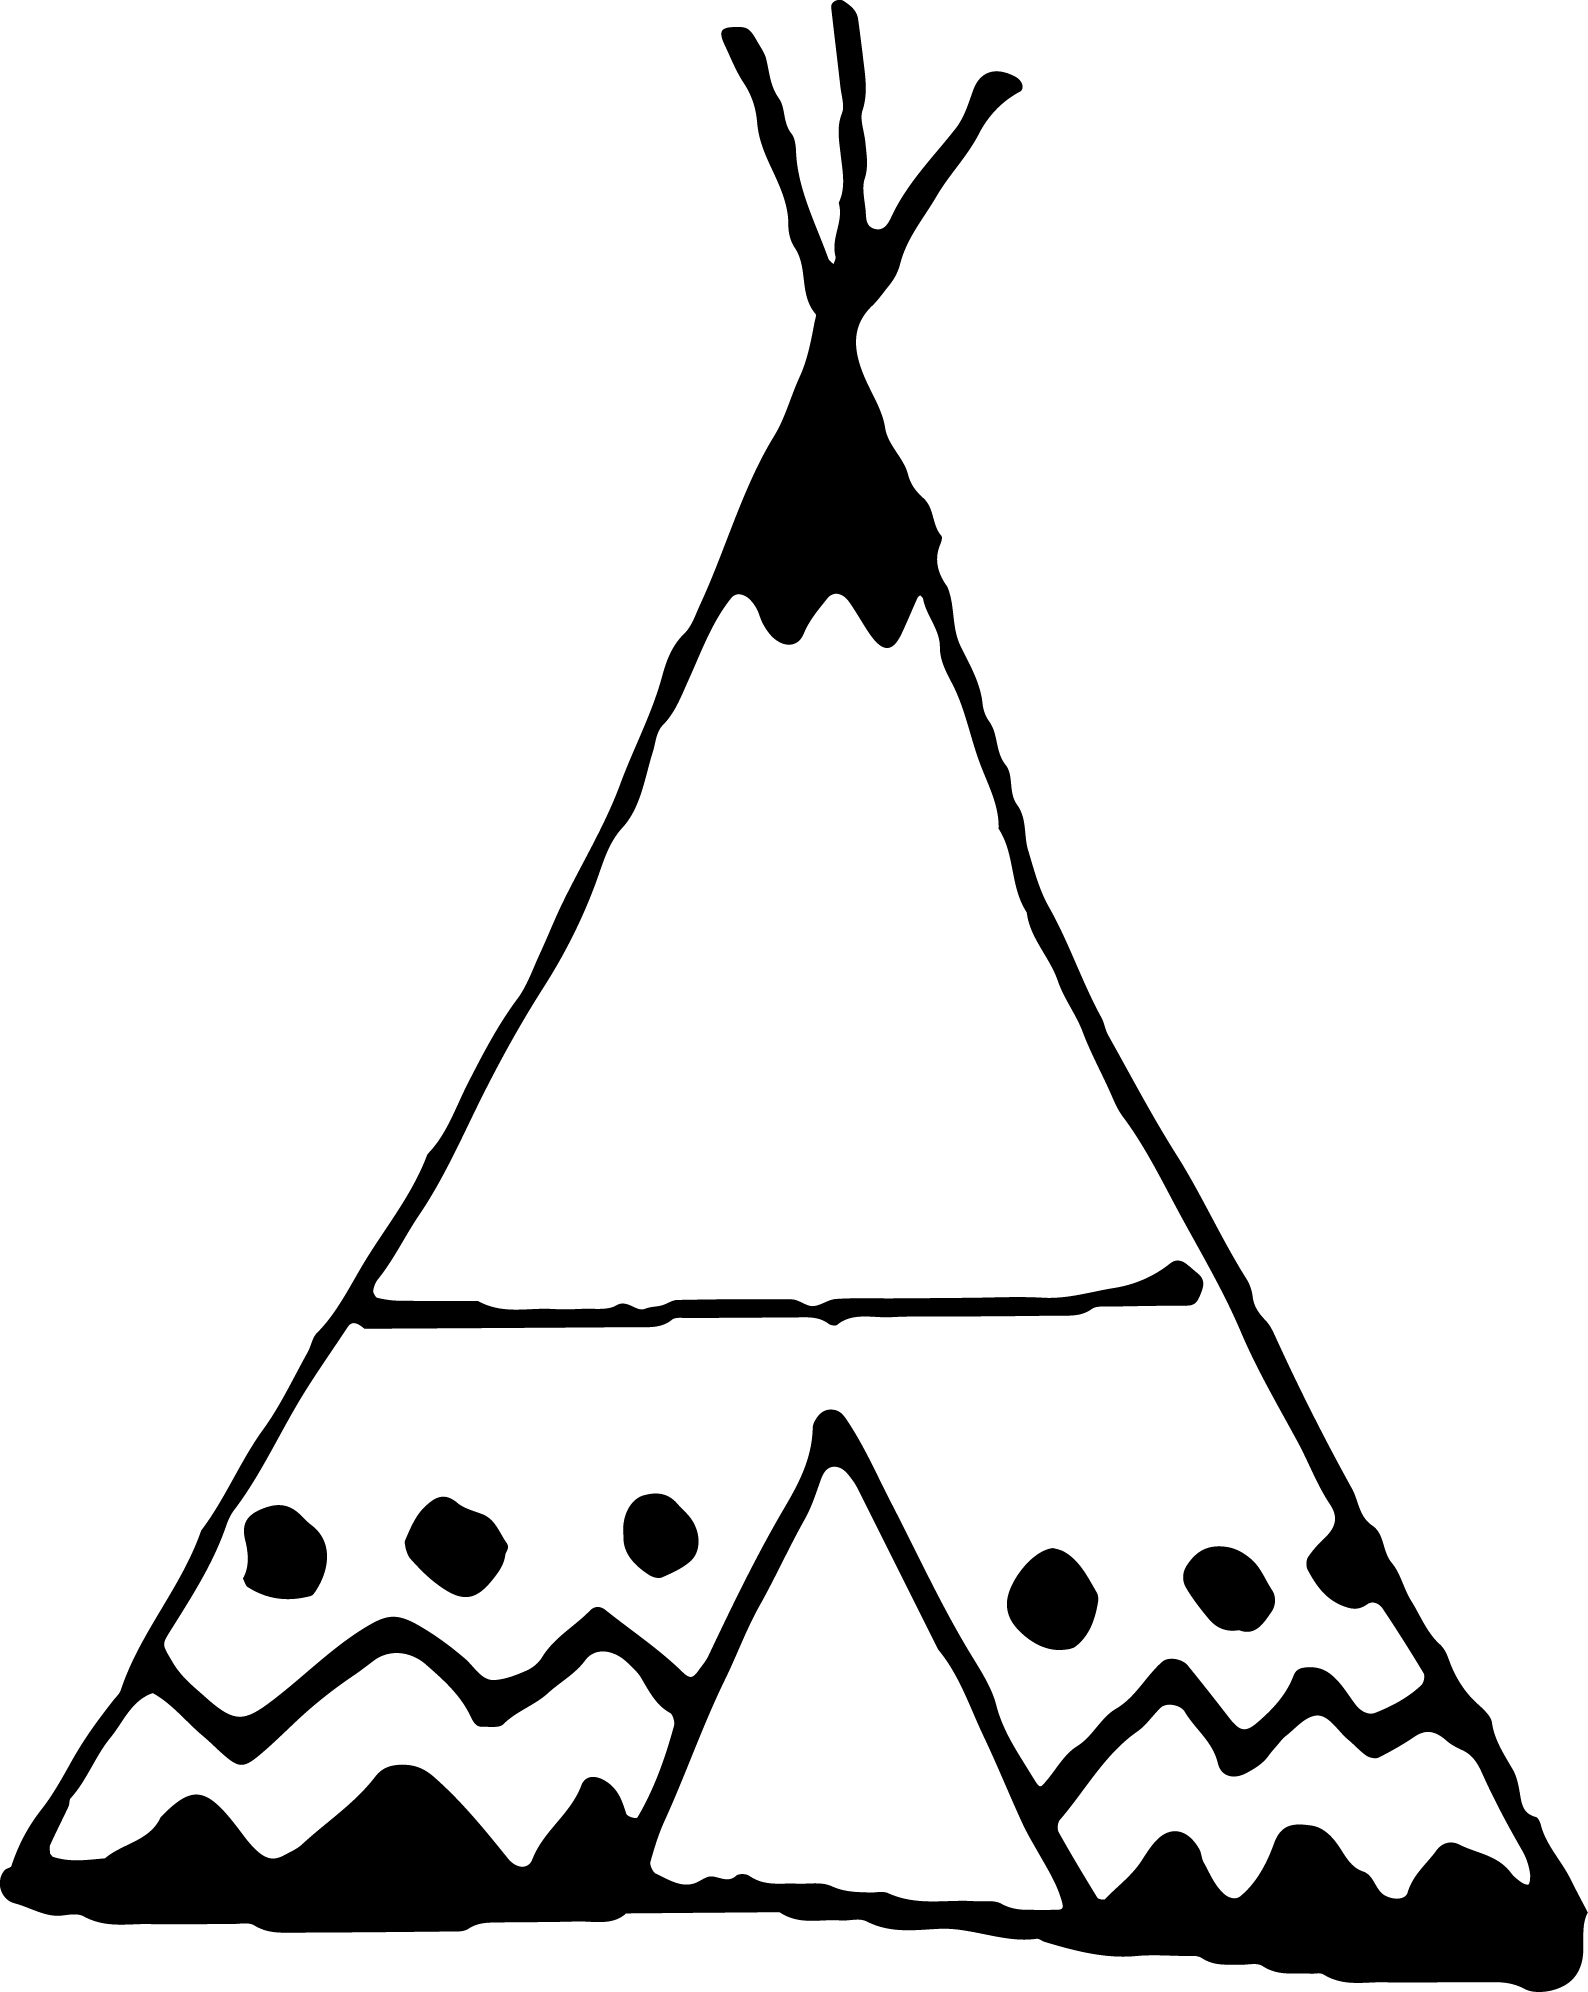 freeuse stock Black and white teepee clipart. Family shoot raleigh nsw